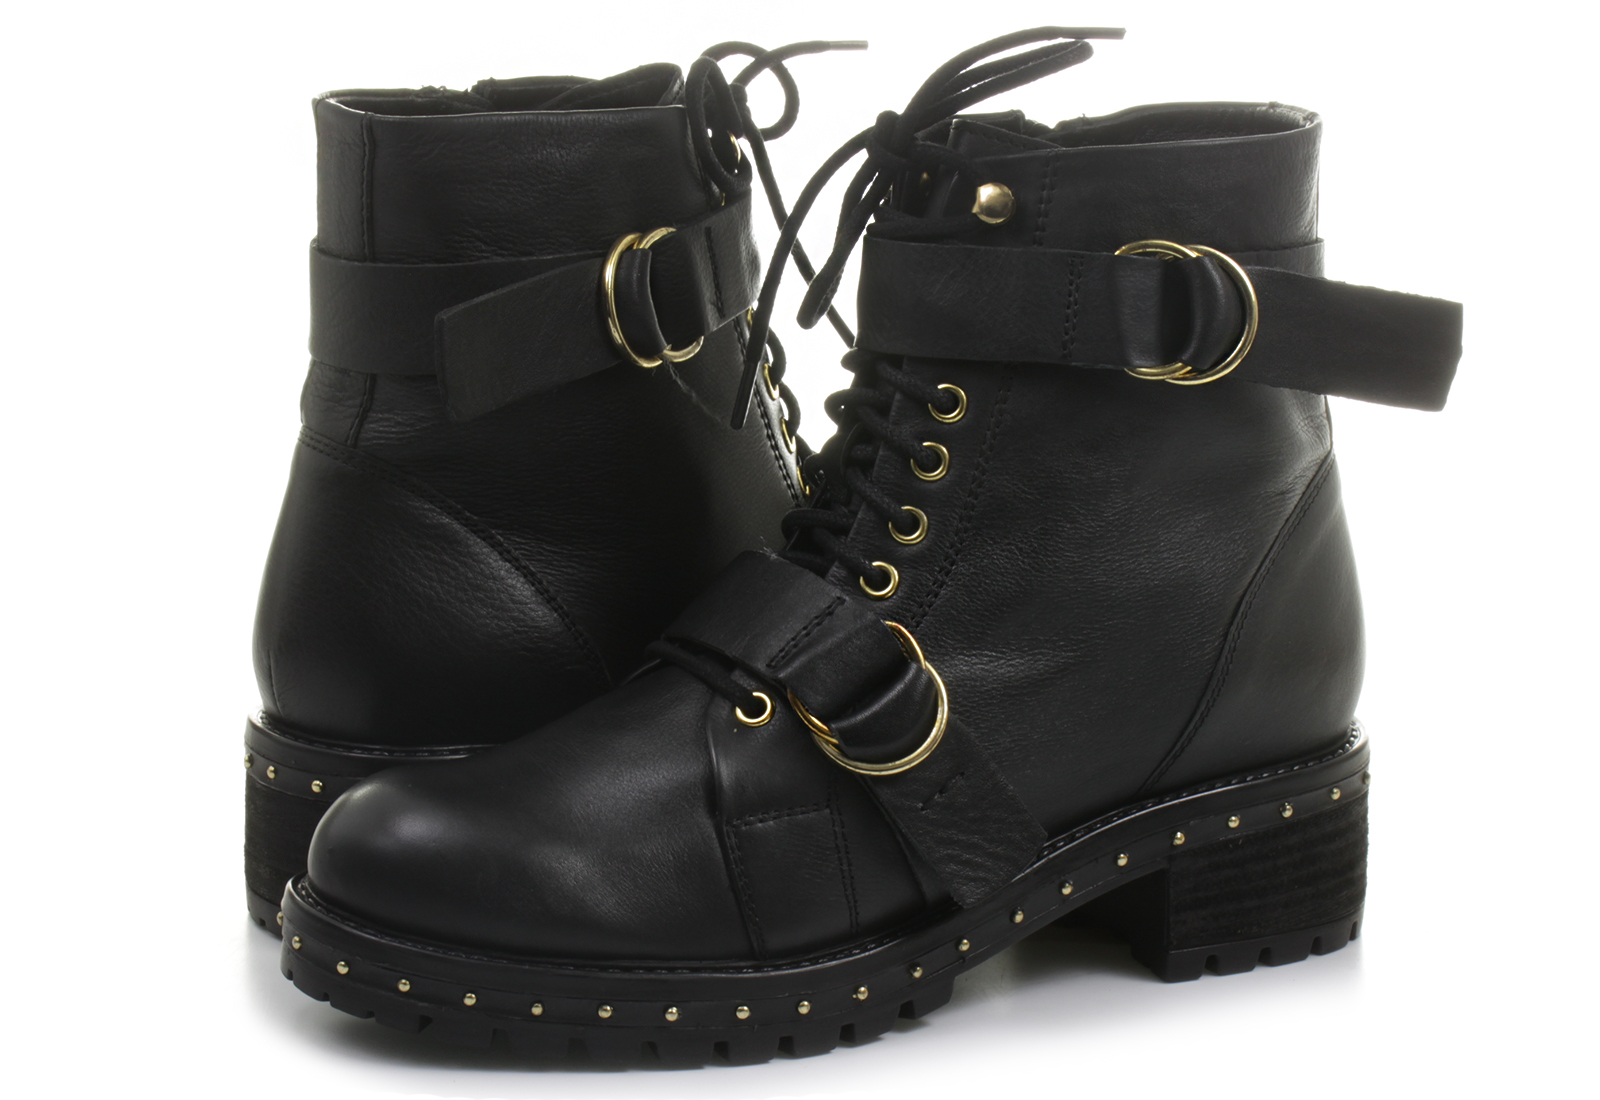 bronx boots 46952 a 231 46952 a 231 shop for